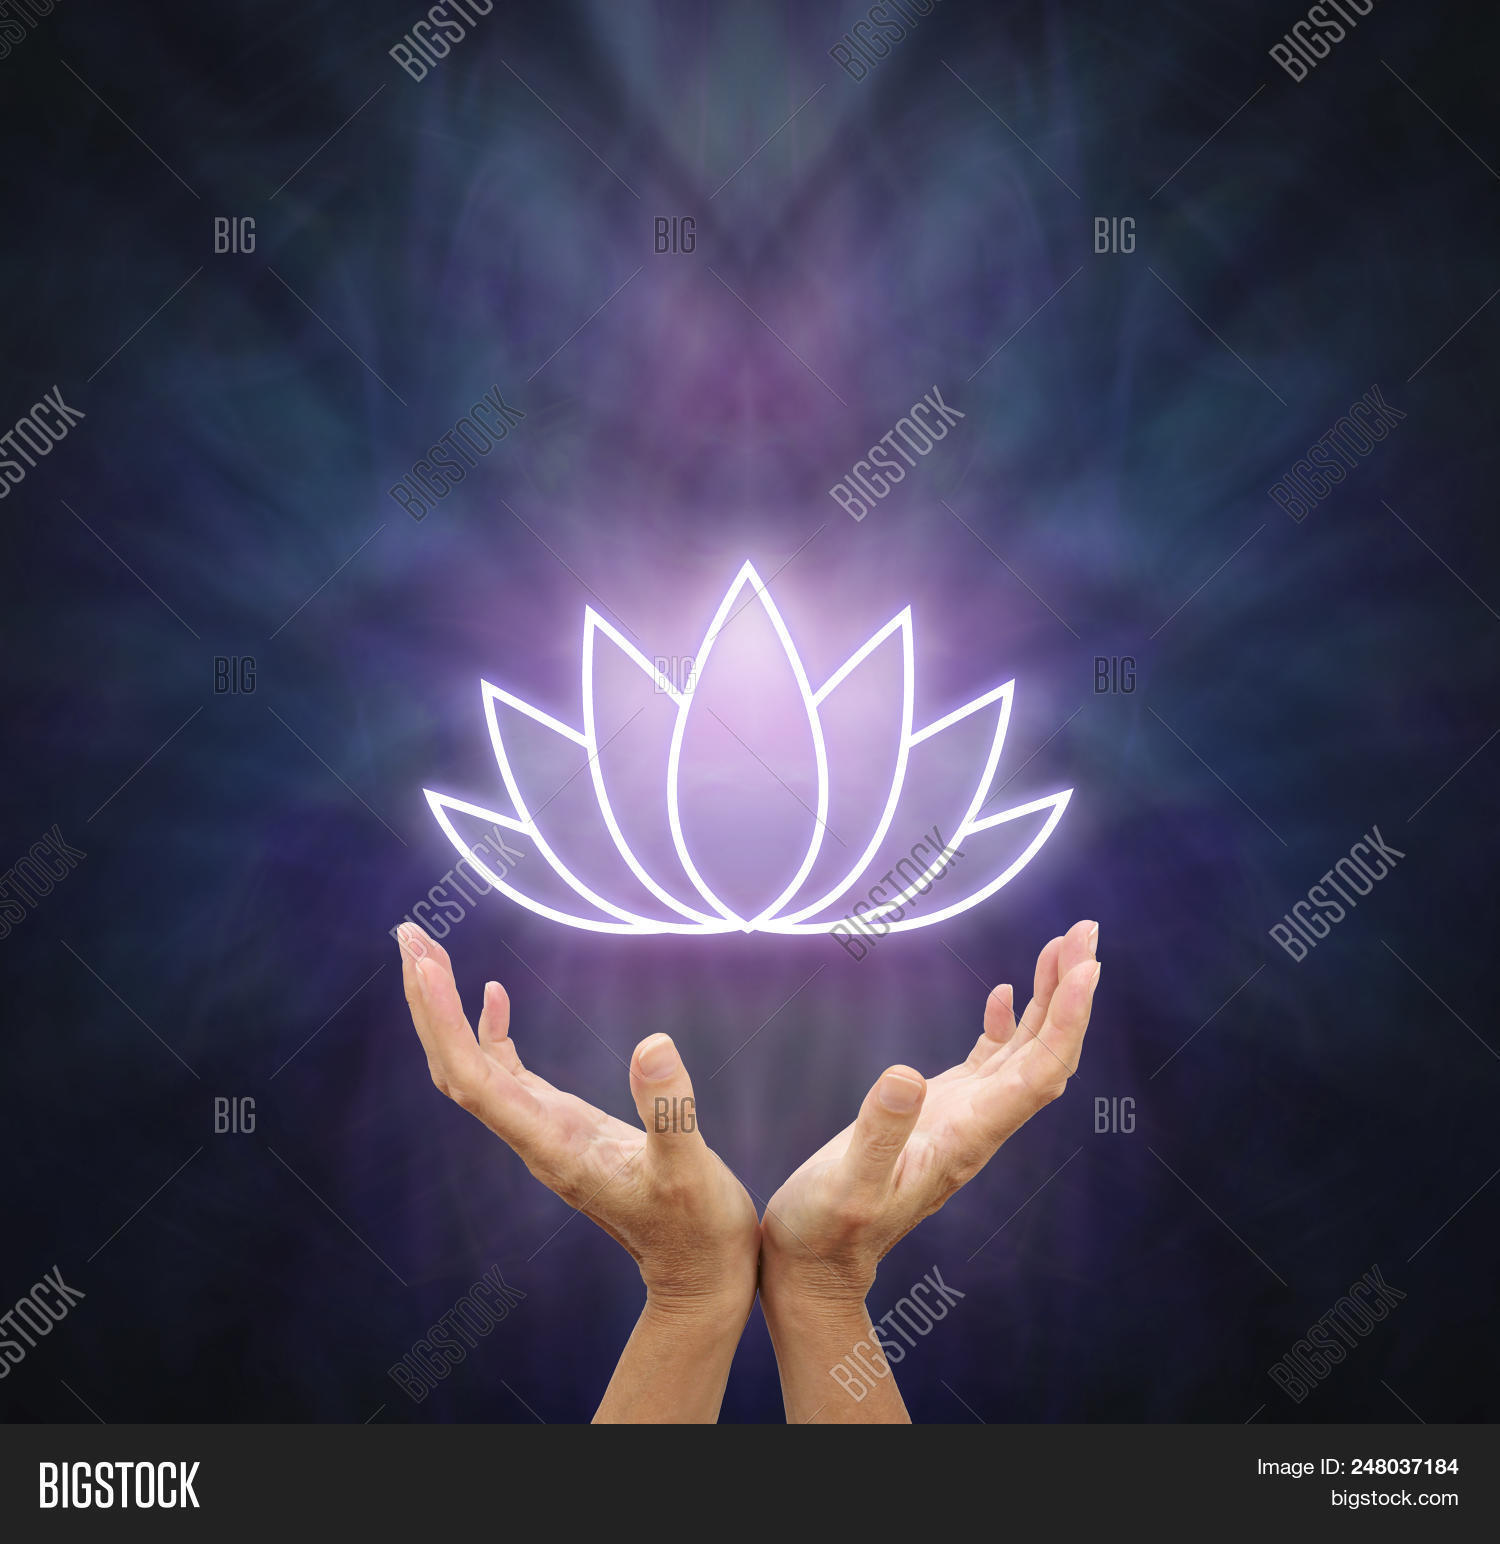 Symbolic lotus healing image photo free trial bigstock symbolic lotus healing energy female hands reaching up and open with a glowing white lotus izmirmasajfo